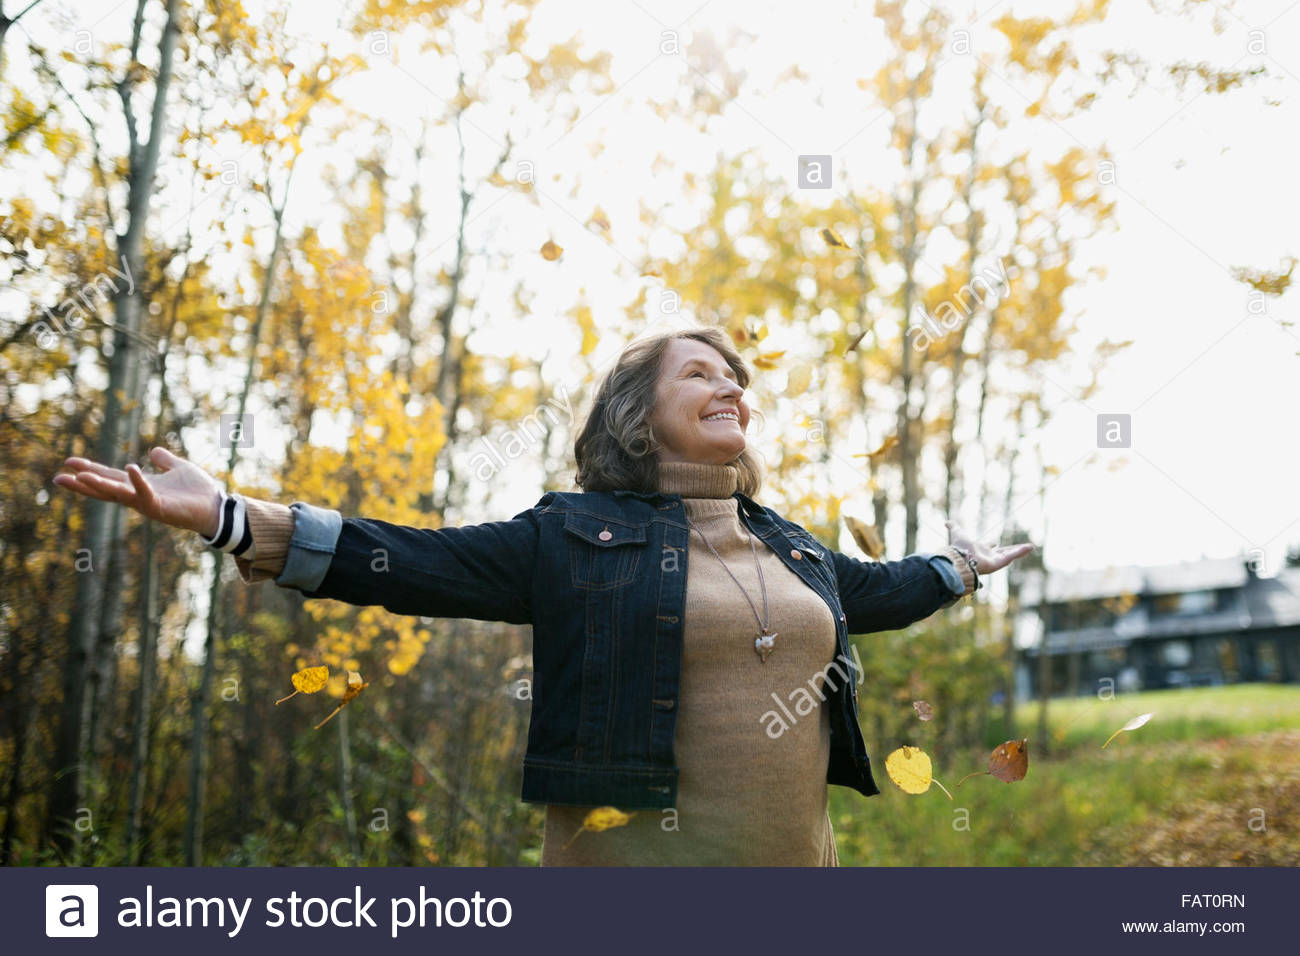 Autumn leaves falling around woman with arms outstretched - Stock Image